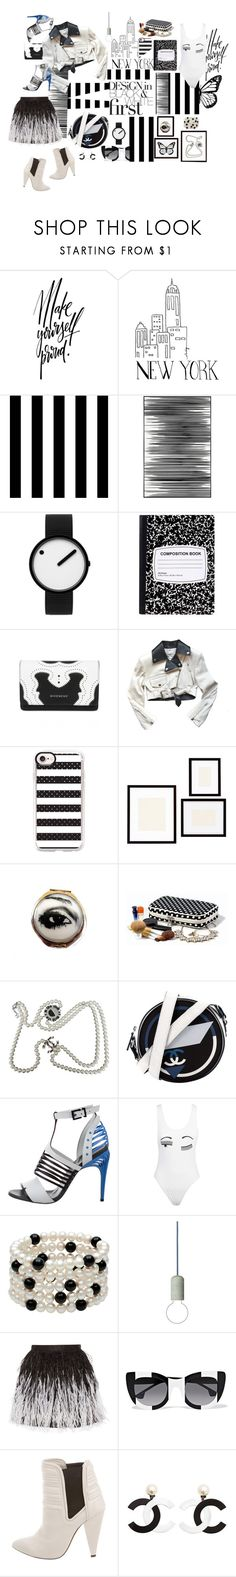 """""""Classic: black & white"""" by ashliyourstrulyx ❤ liked on Polyvore featuring Tempaper, Art Addiction, Rosendahl, Jean-Paul Gaultier, Casetify, Pottery Barn, Chanel, Fendi, Chiara Ferragni and Alice + Olivia"""